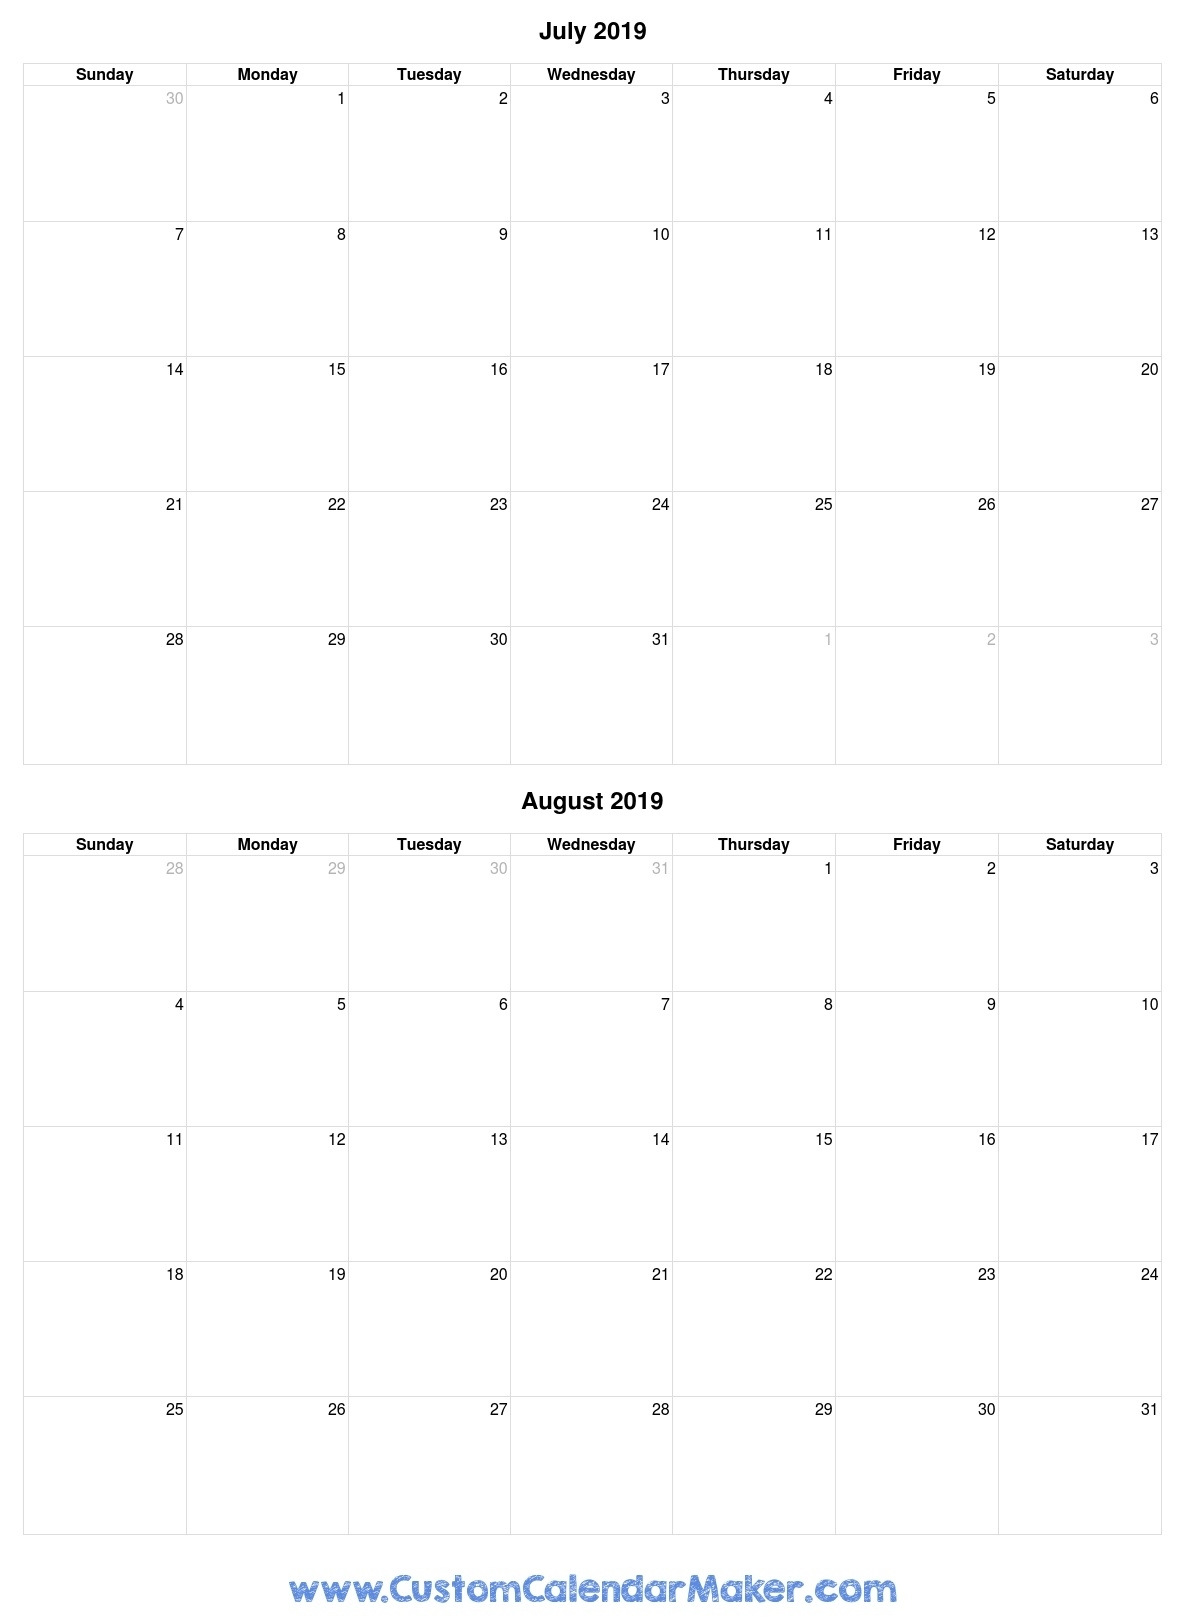 July And August 2019 Free Printable Calendar Template regarding Printable July Through August Calendars